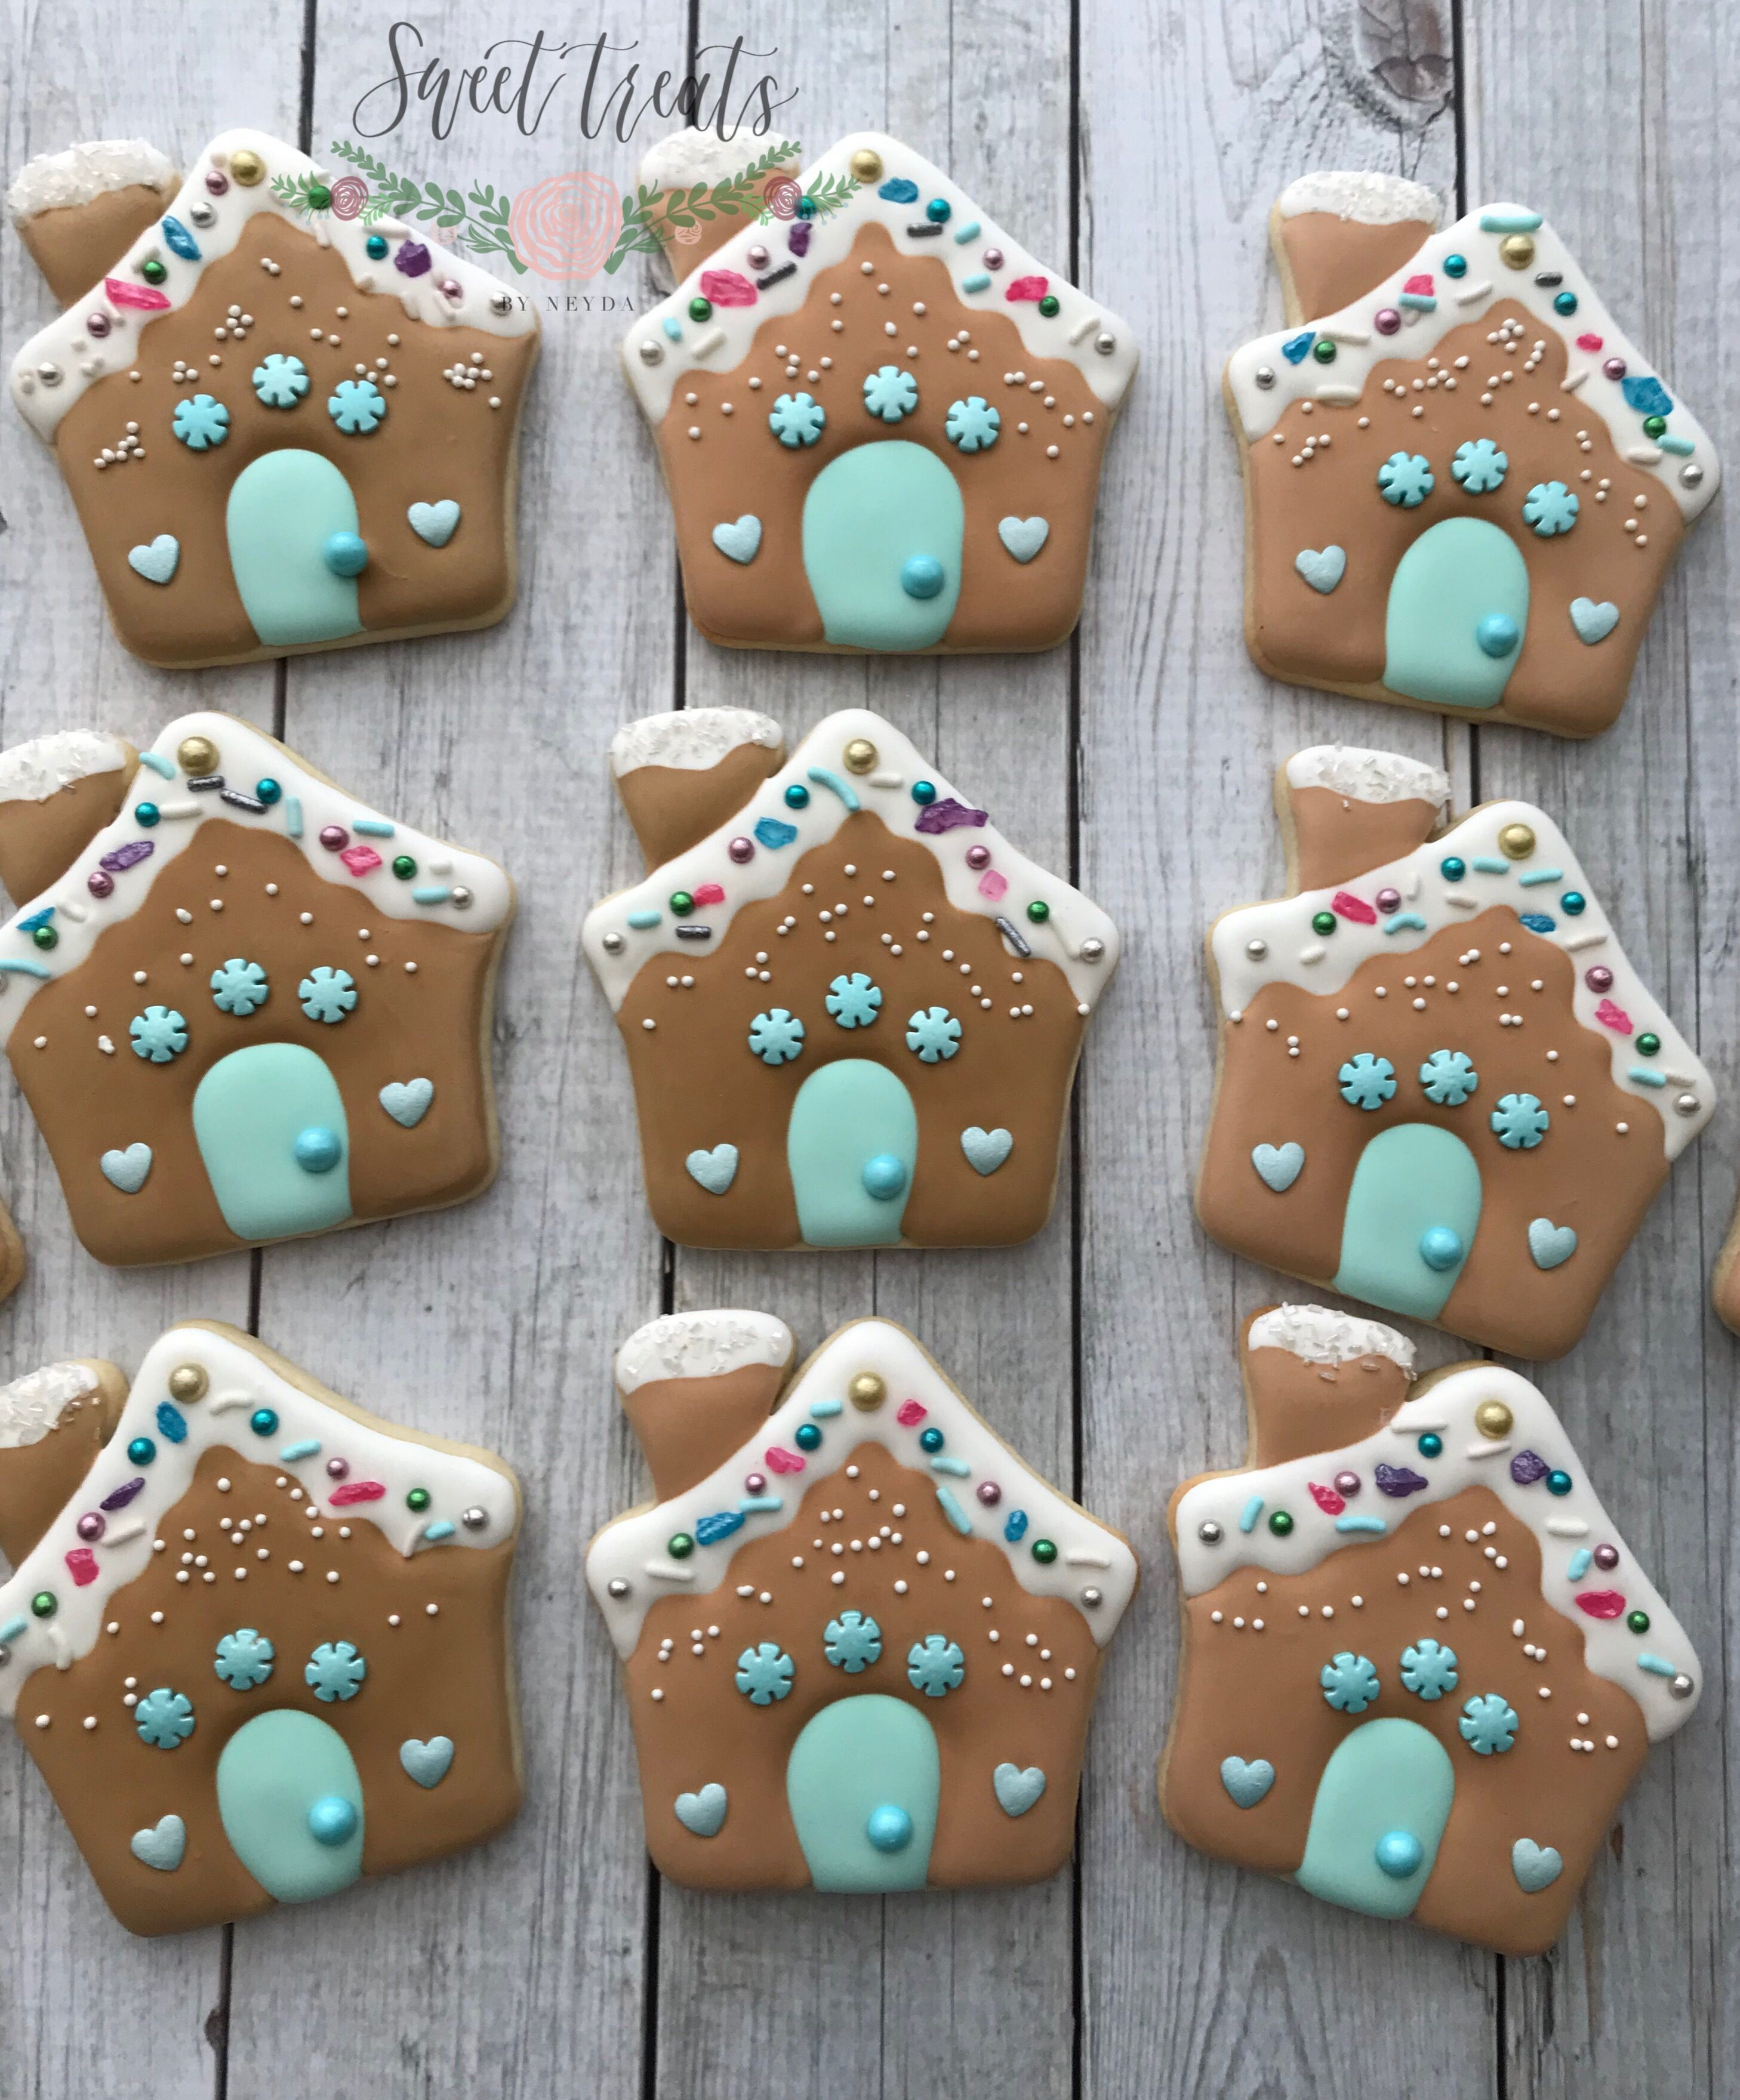 Gingerbread House Sugar Cookies Loving These Cutters By Sweet